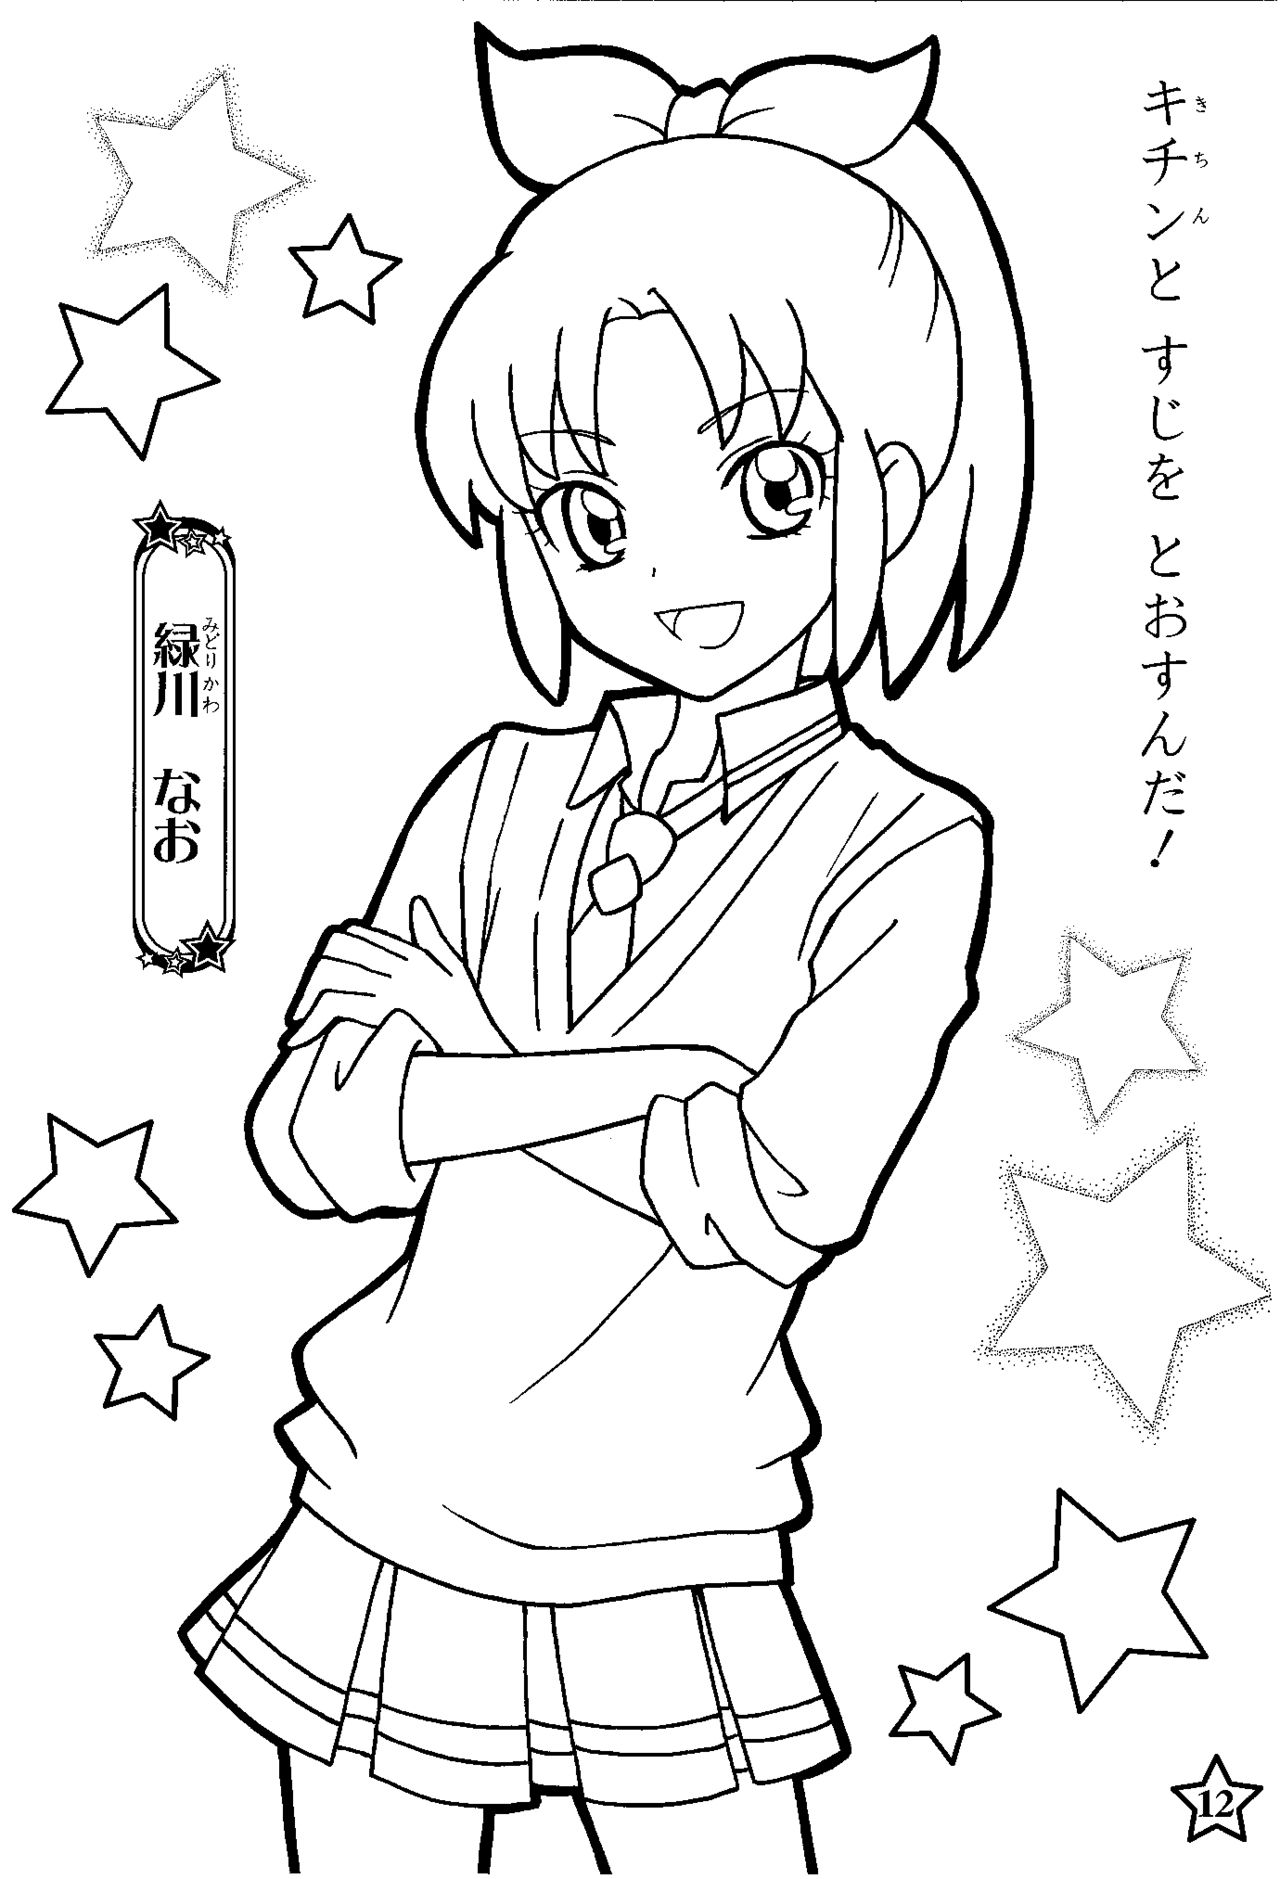 Creative Anime Colouring Pages Gallery Photos